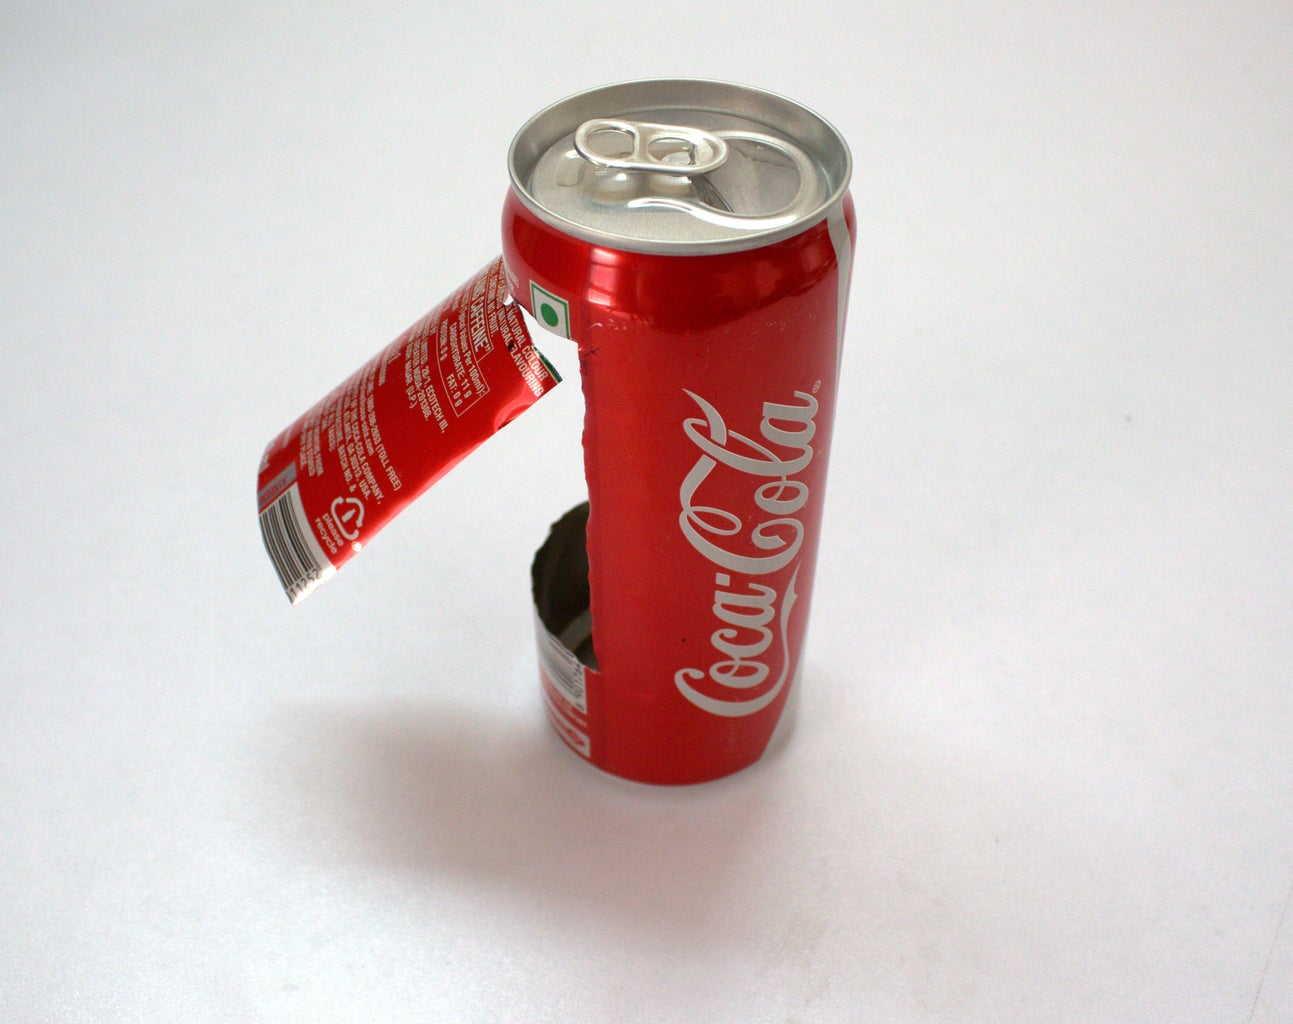 Cut the First Can